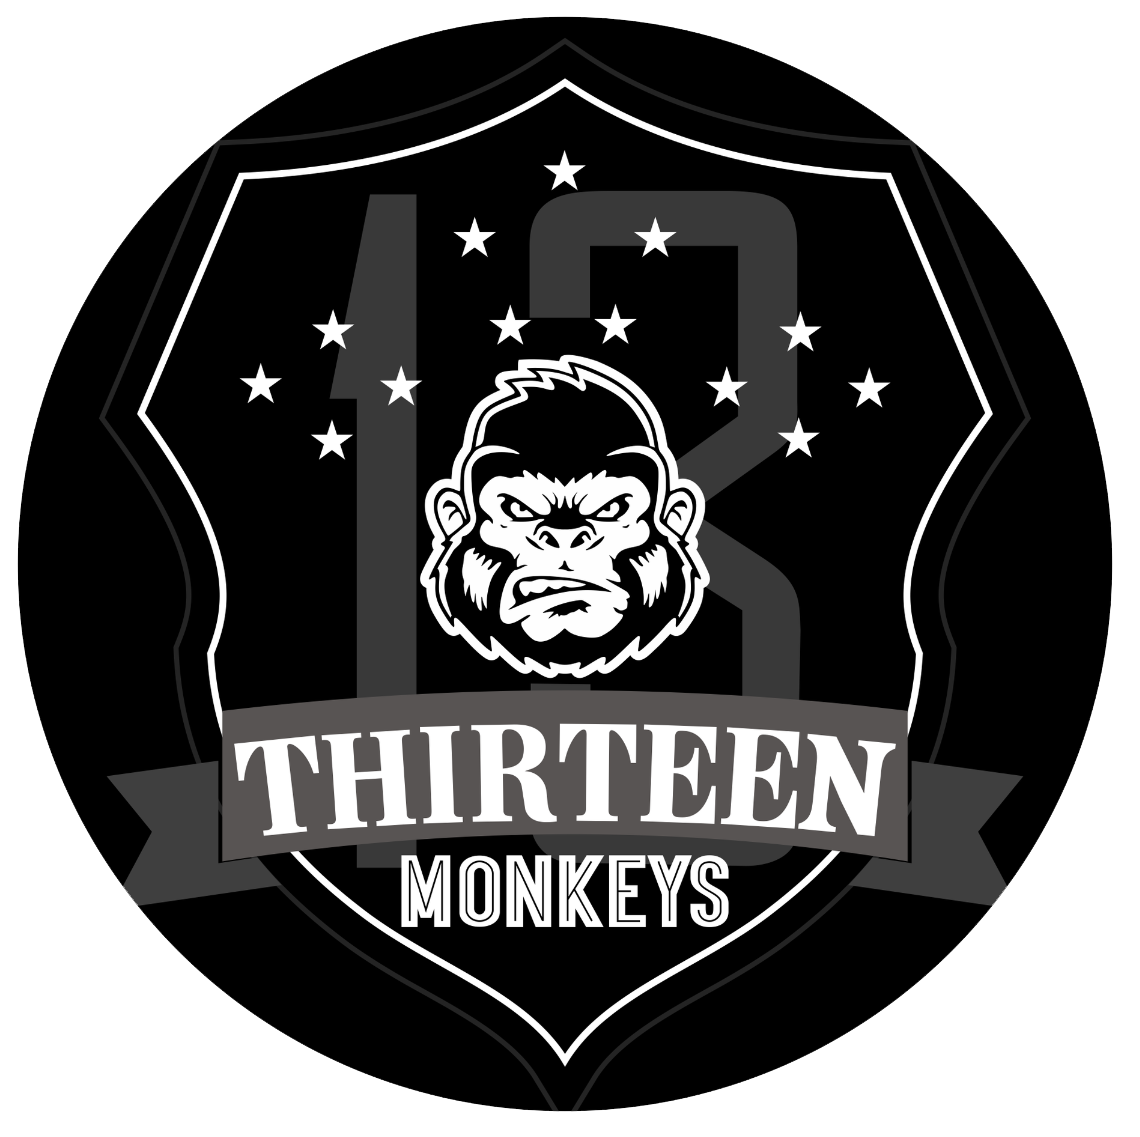 THIRTEEN MONKEYS